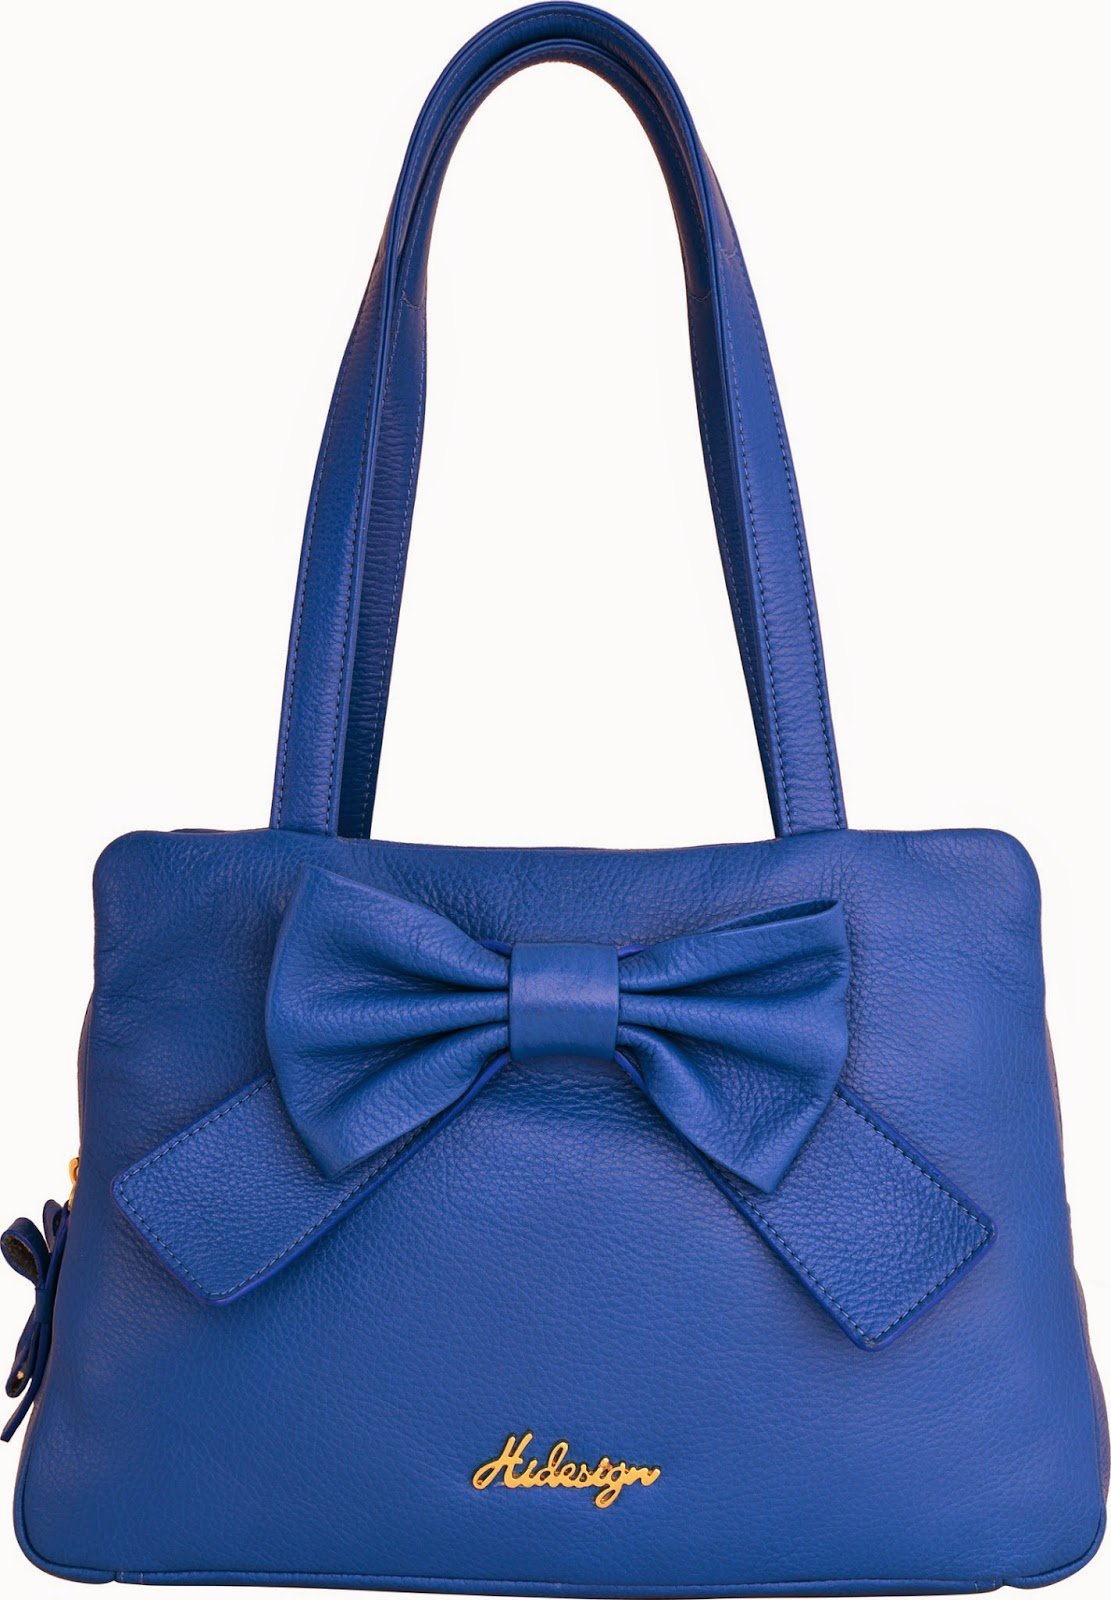 Hidedesign bag blue with a bow